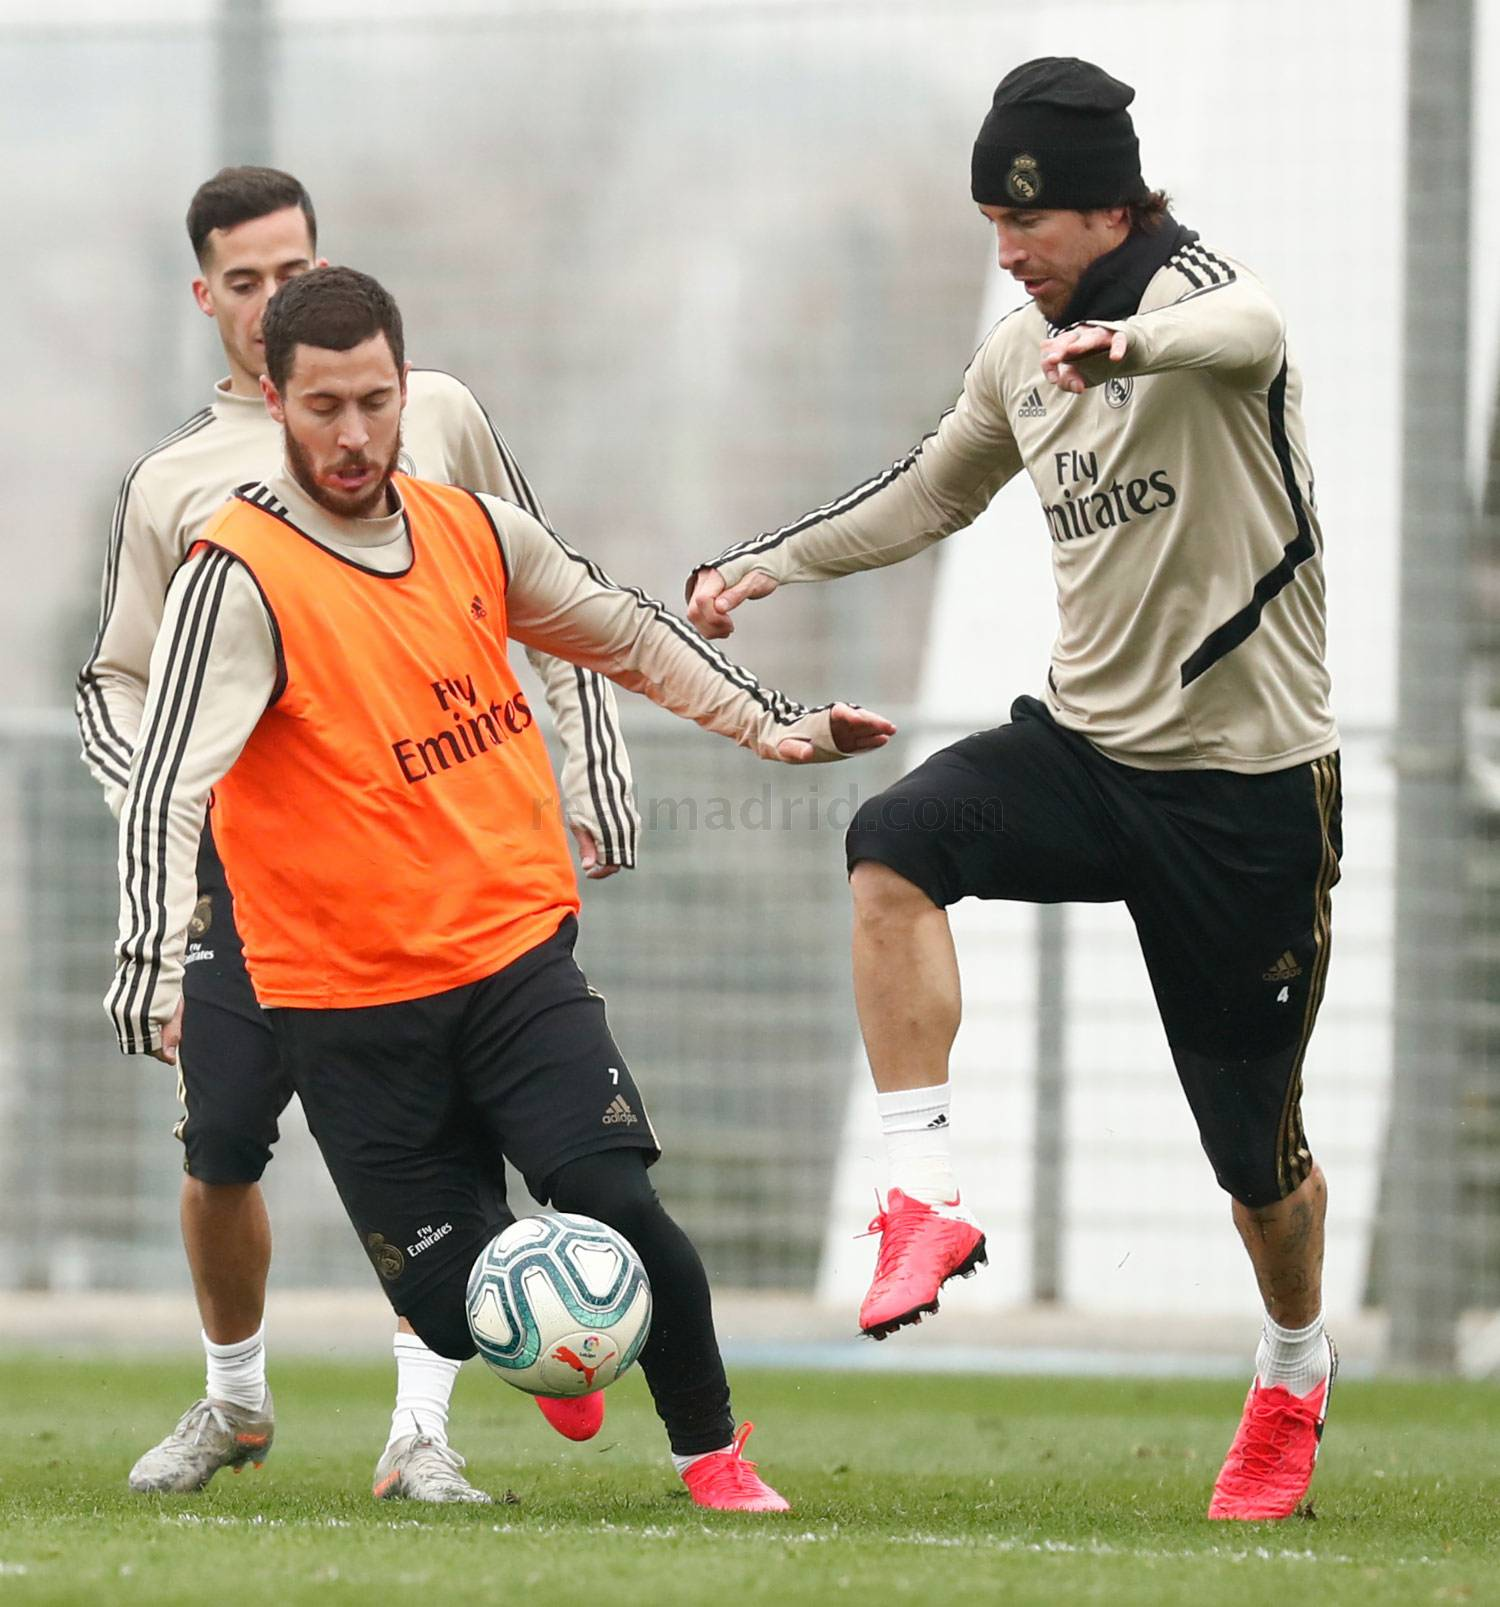 Real Madrid - Entrenamiento del Real Madrid  - 08-02-2020